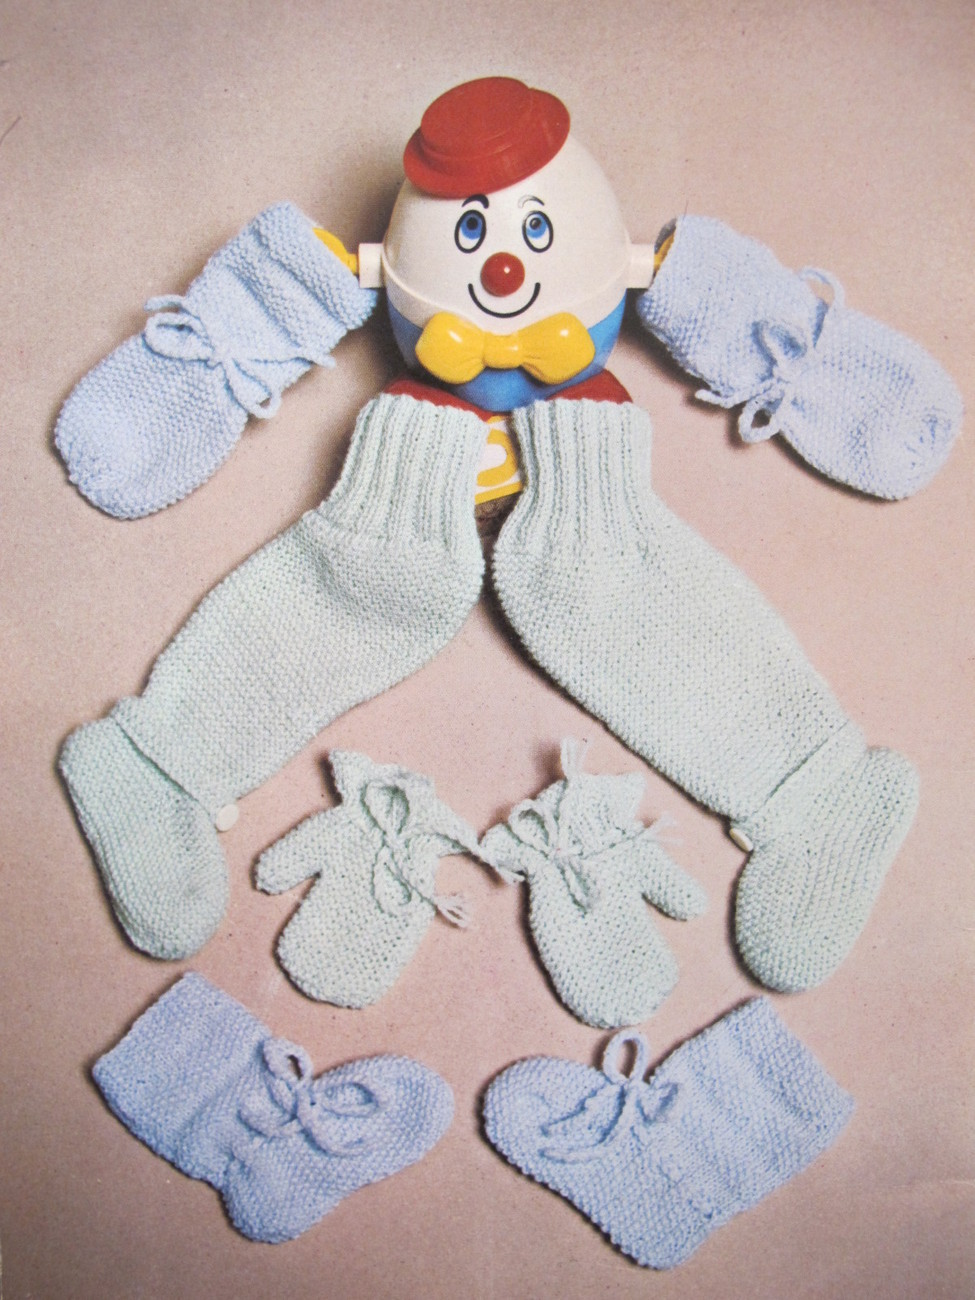 Vintage Patons Knitting Crocheting Patterns Hats Mitts Bootees etc TOTS TODDLERS